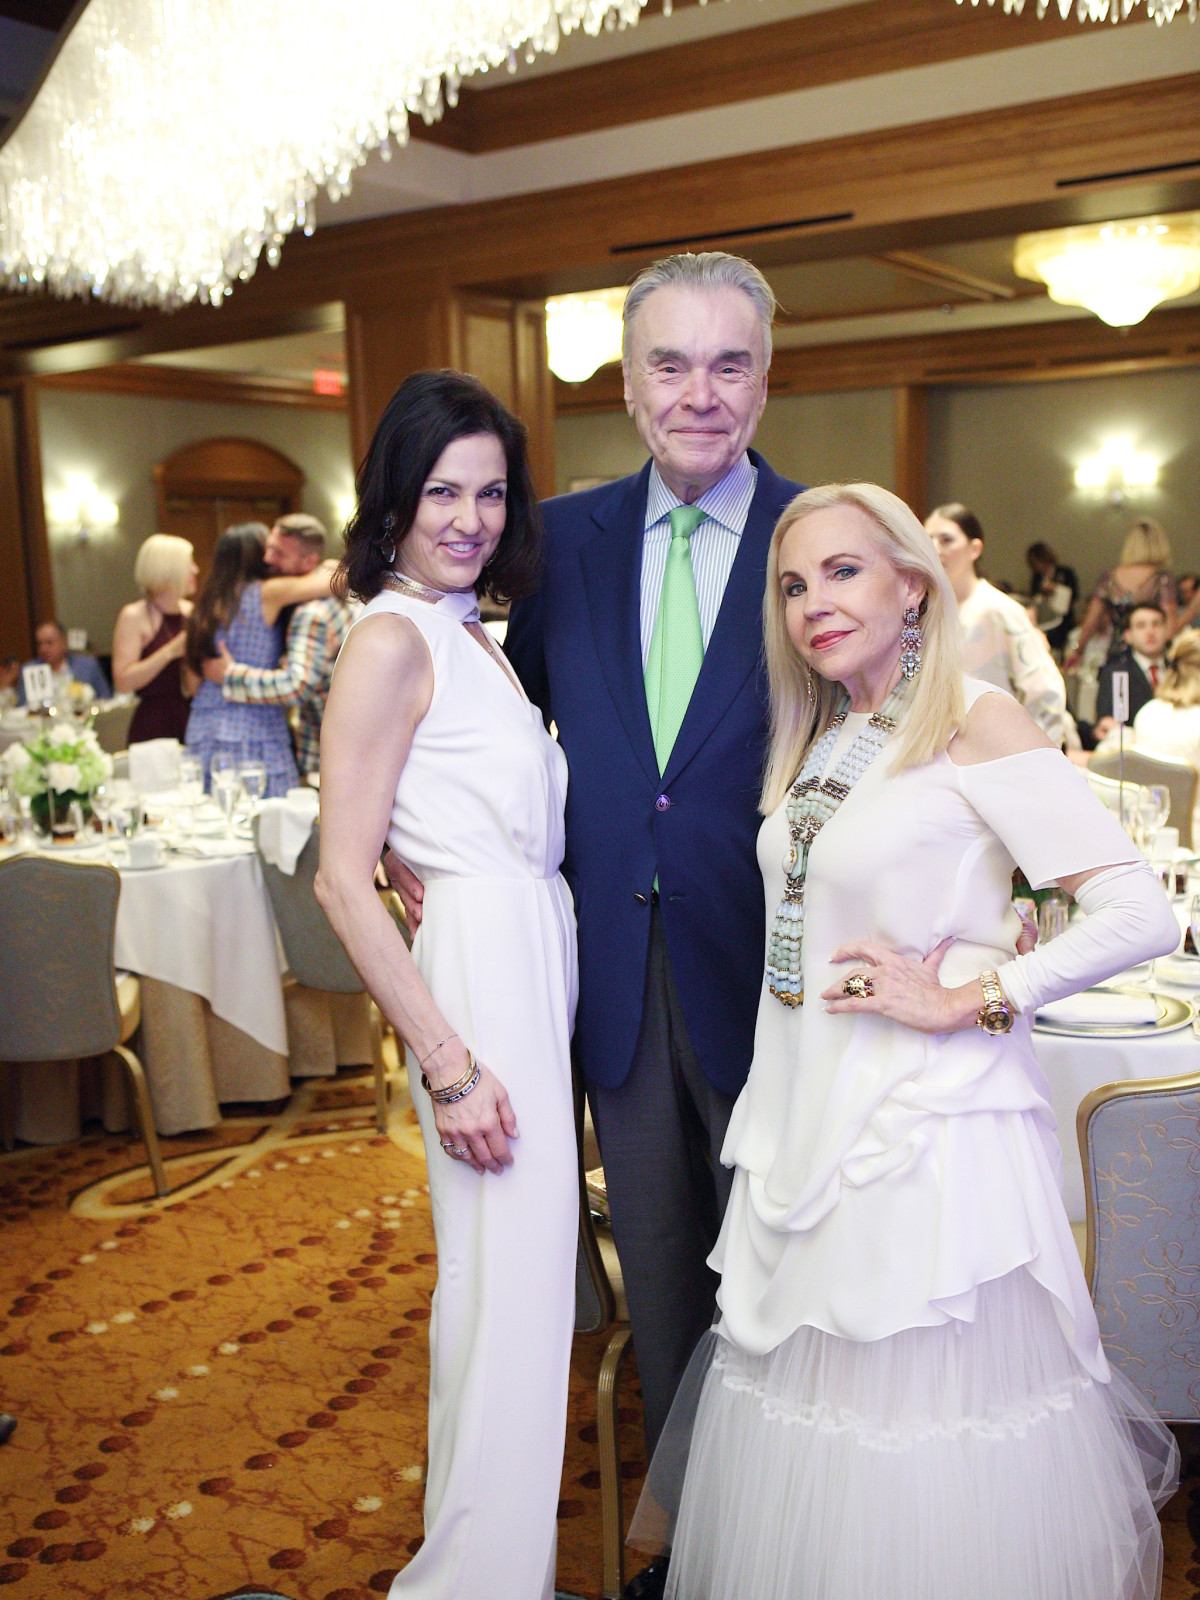 Jessica Rossman, Gordon Bethune, Carolyn Farb at Great Age Movement fundraiser